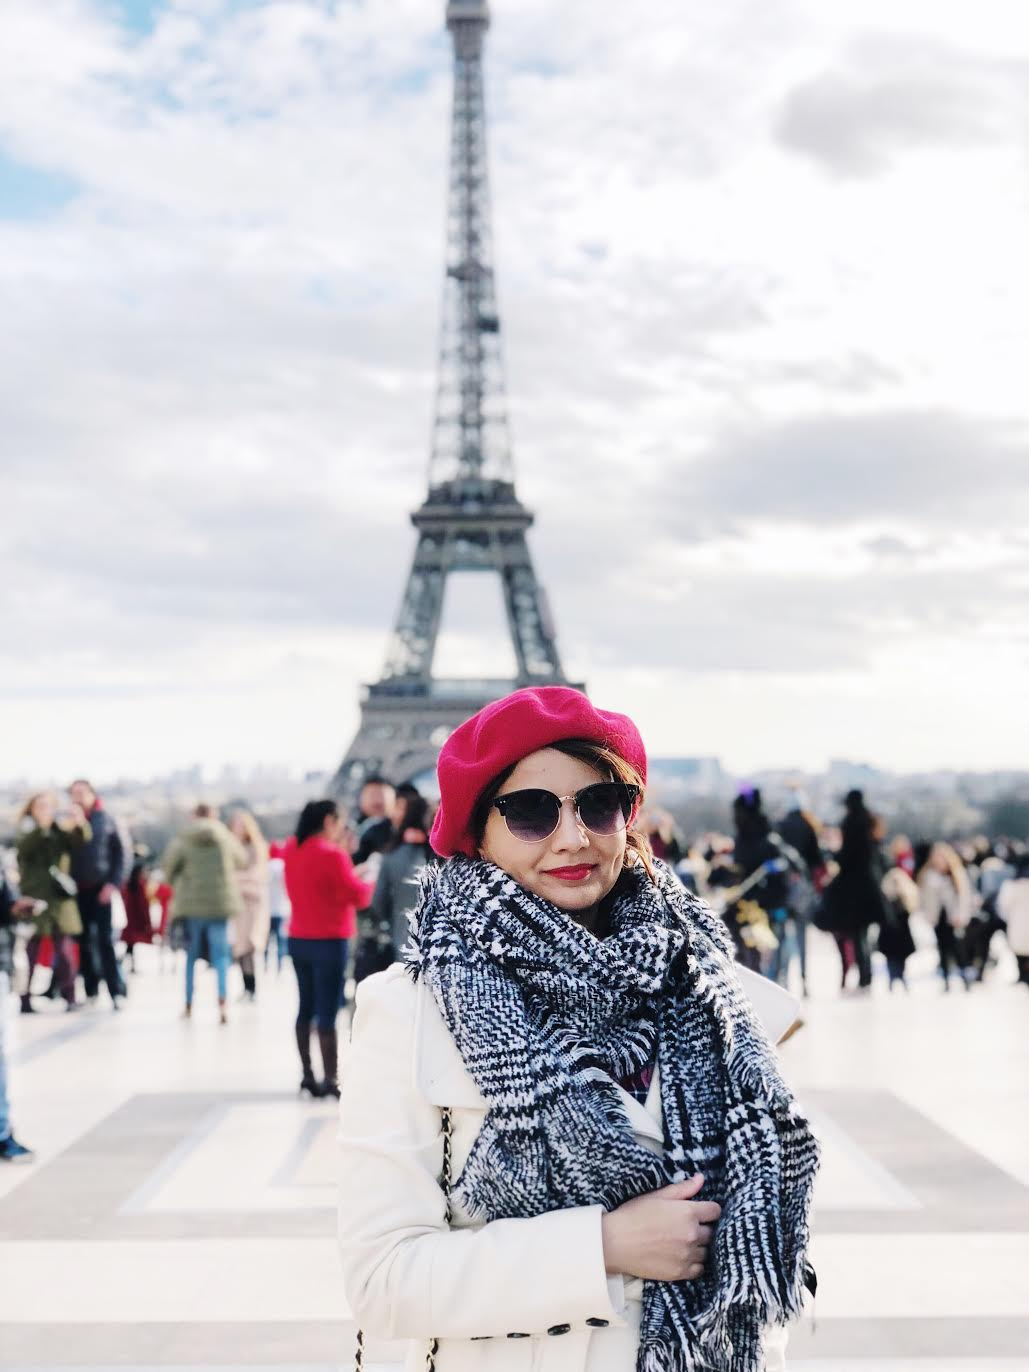 Muslim-travel-guide-Paris-Eiffel-Tower-portrait-location.jpg